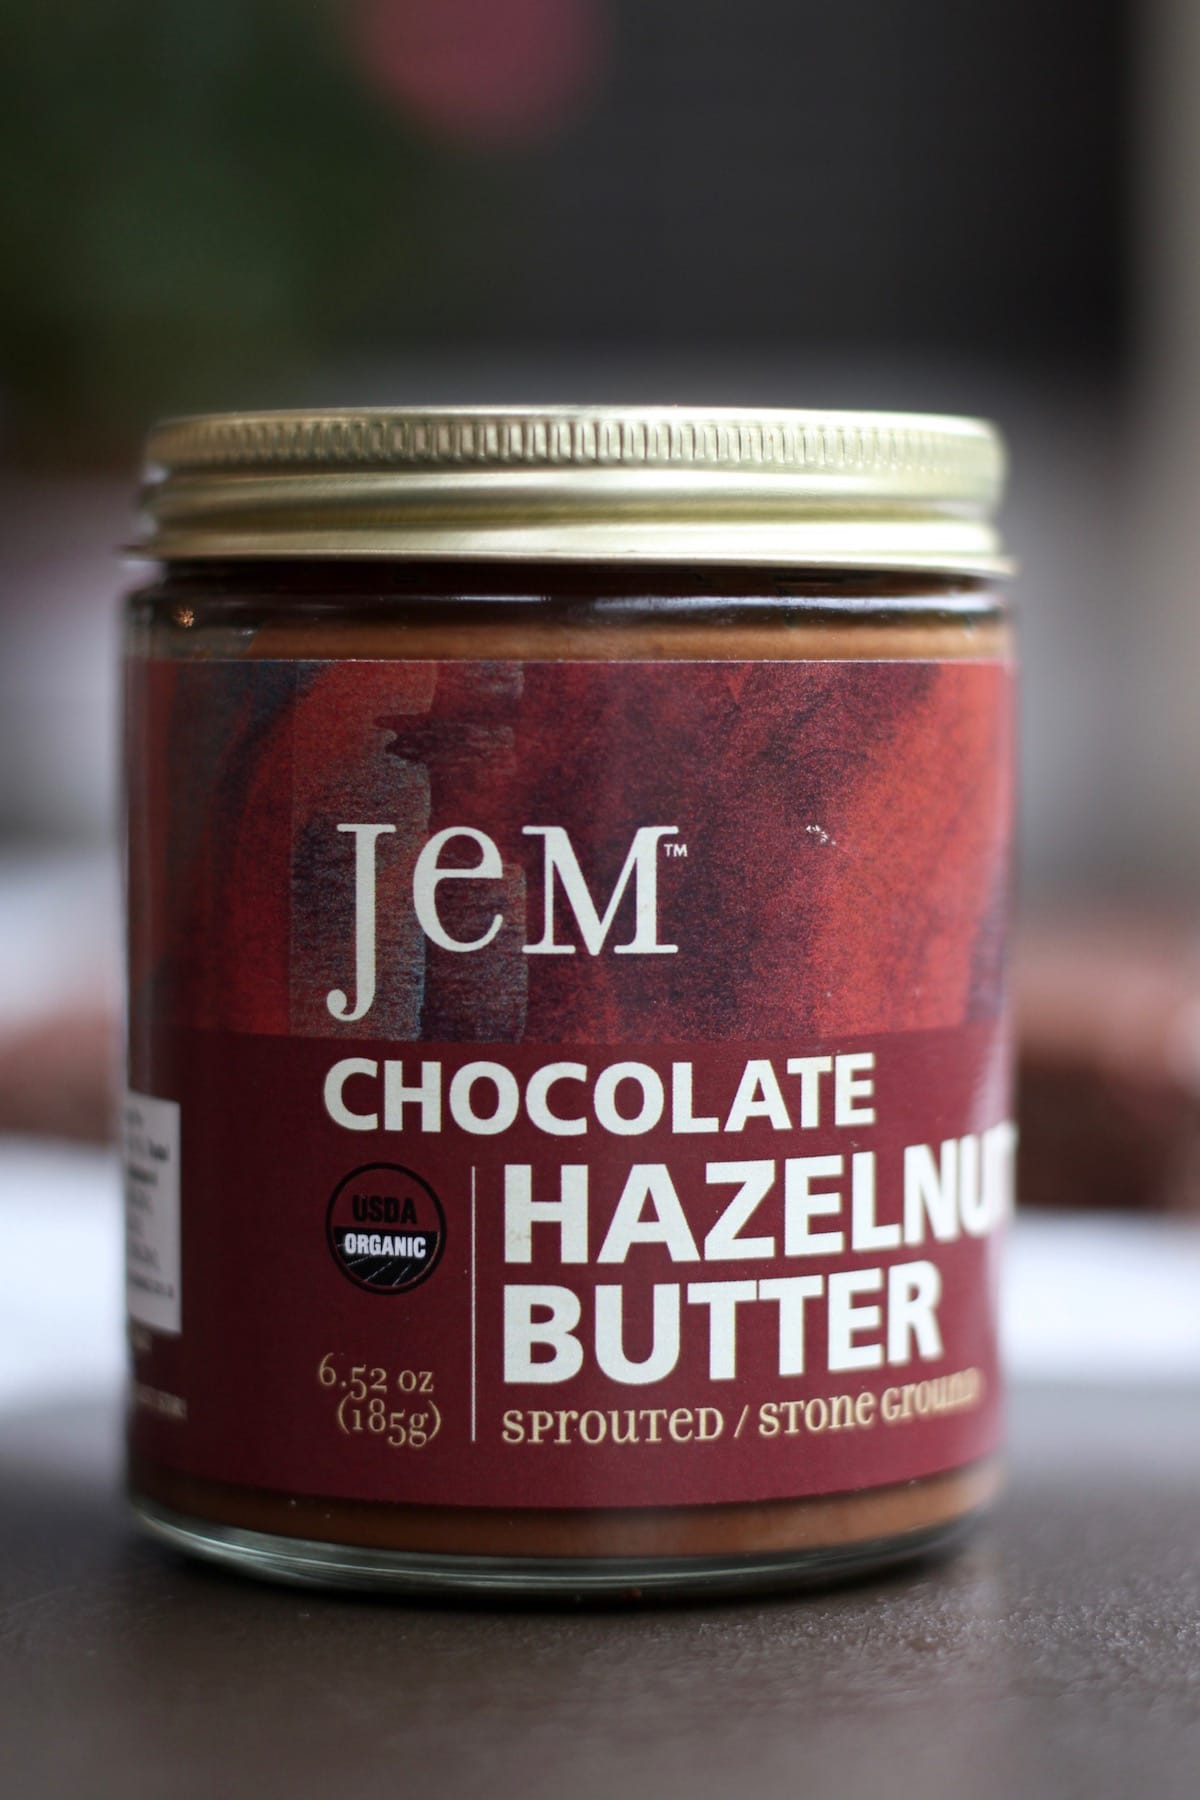 Jem organics chocolate hazelnut butter